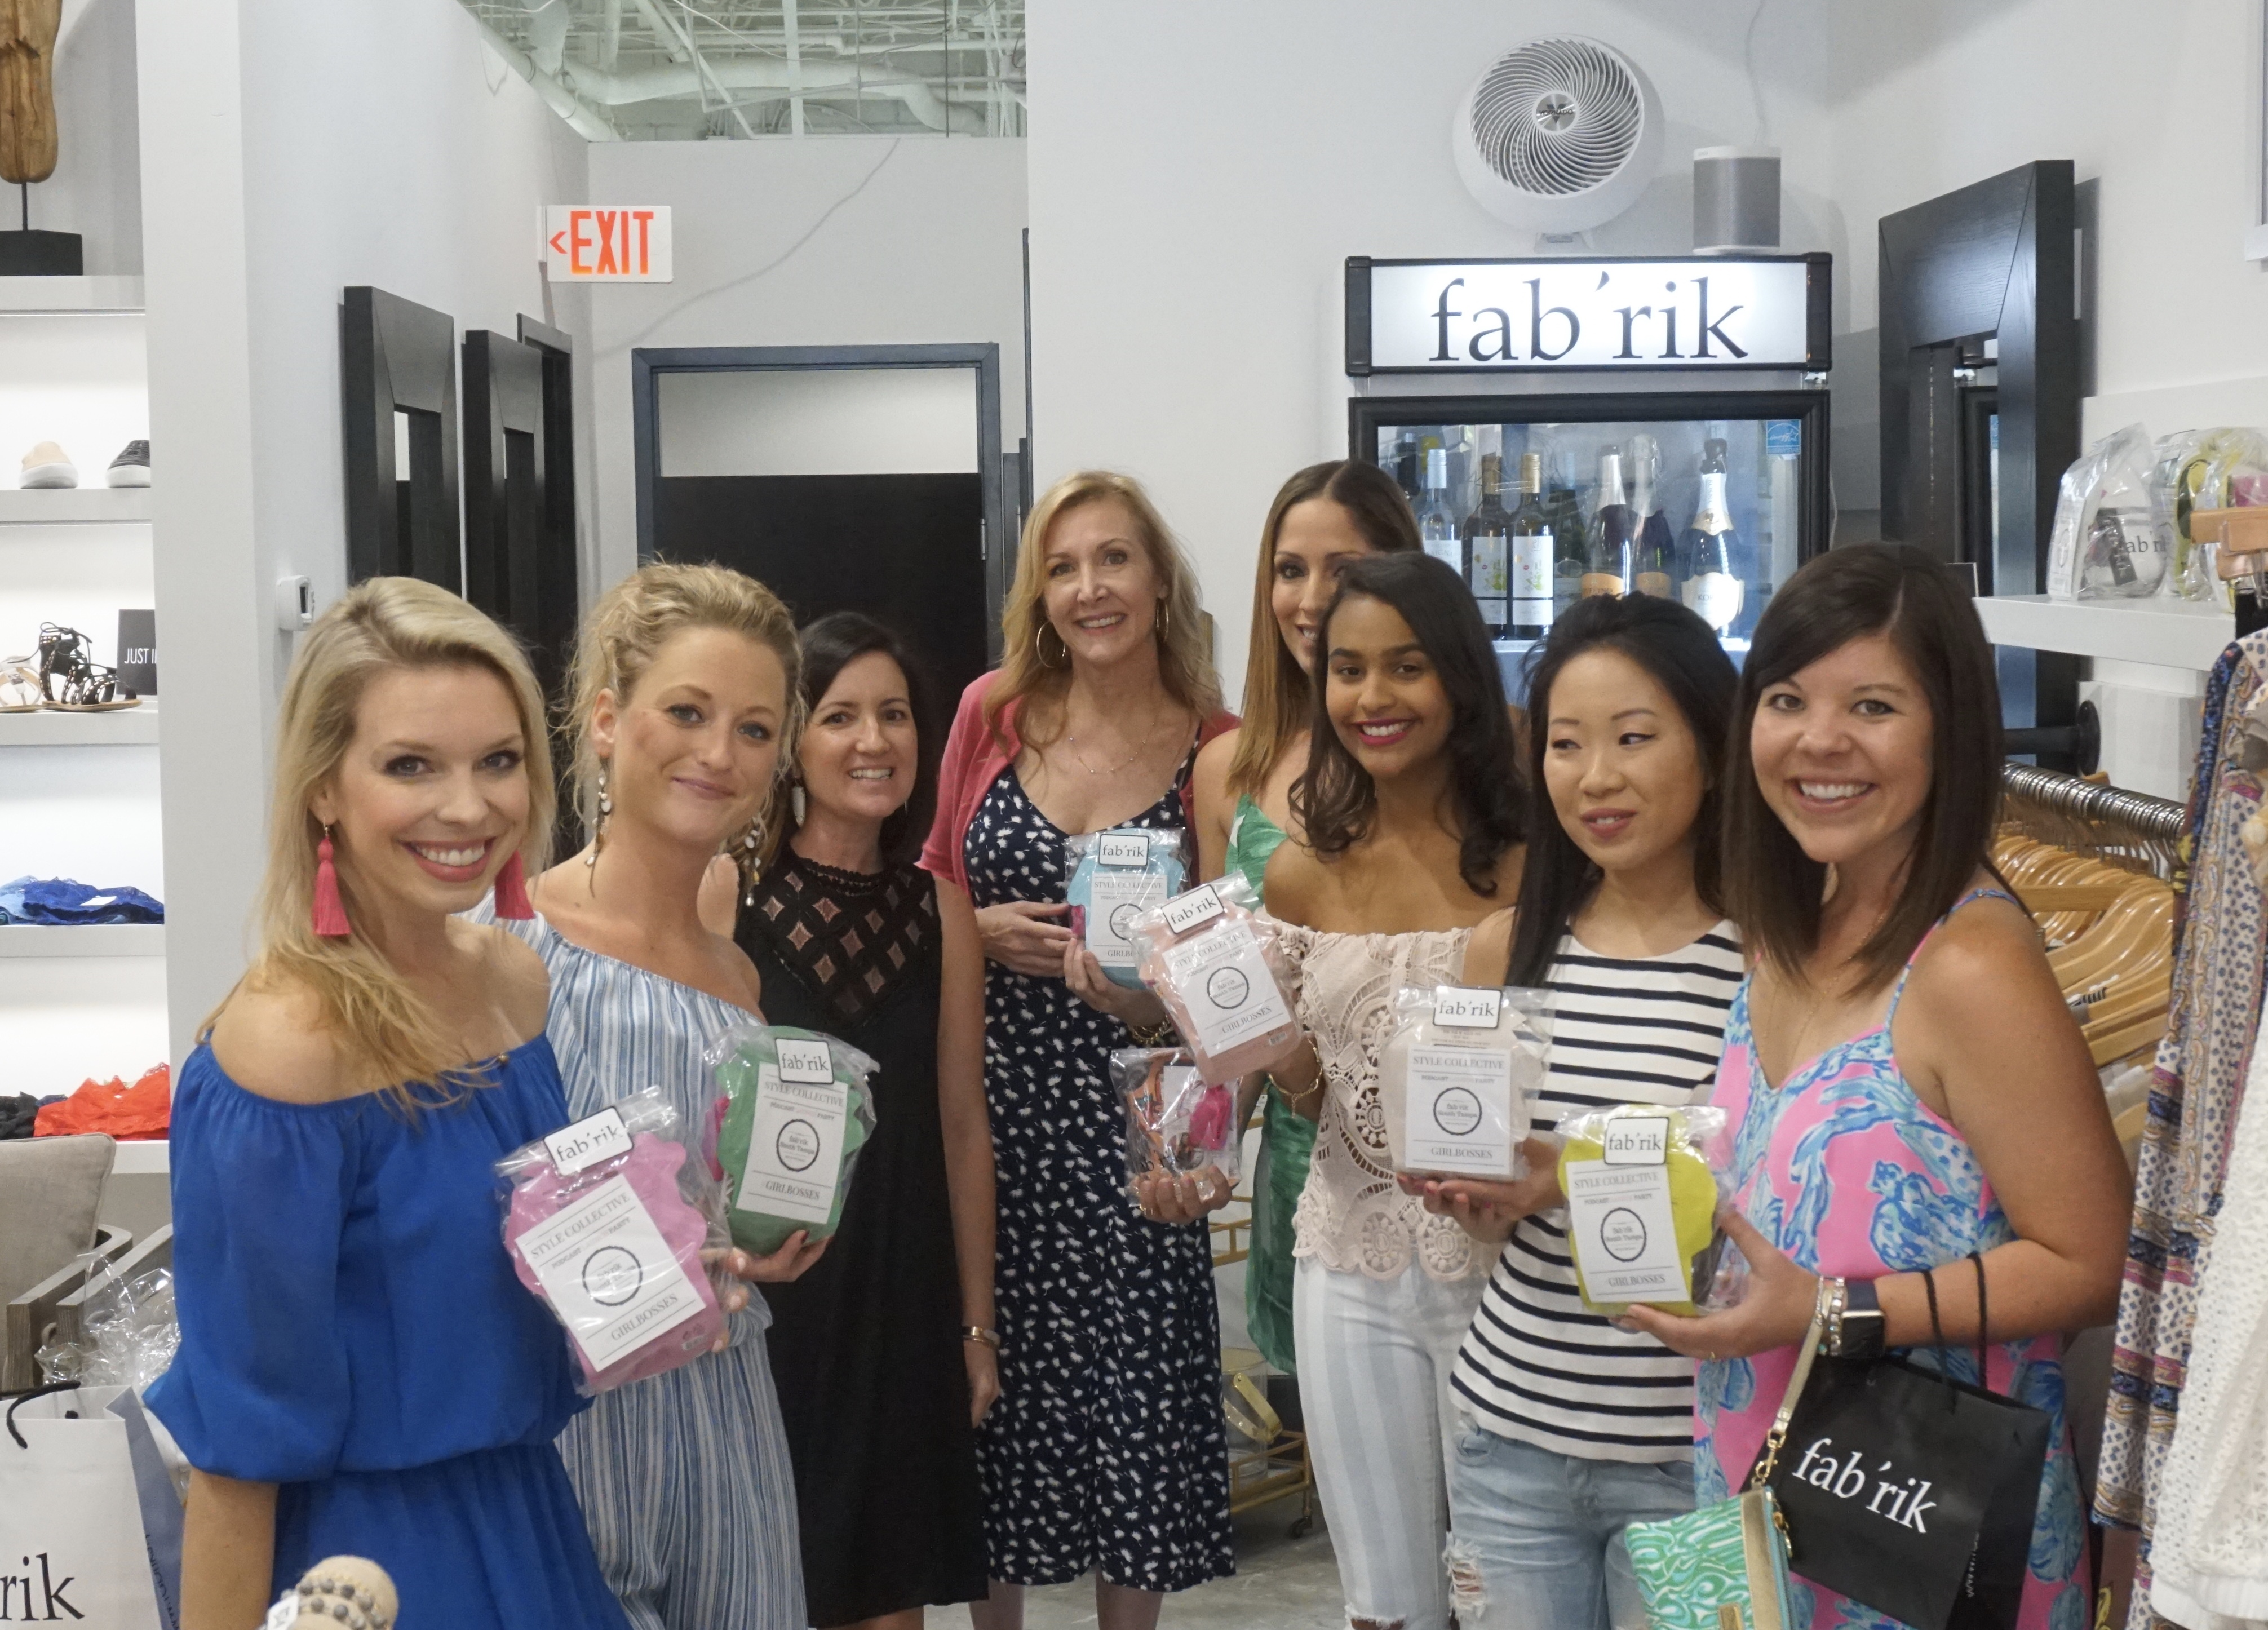 Bloggers at Style Collective Podcast launch Party at Fab'rik in South Tampa